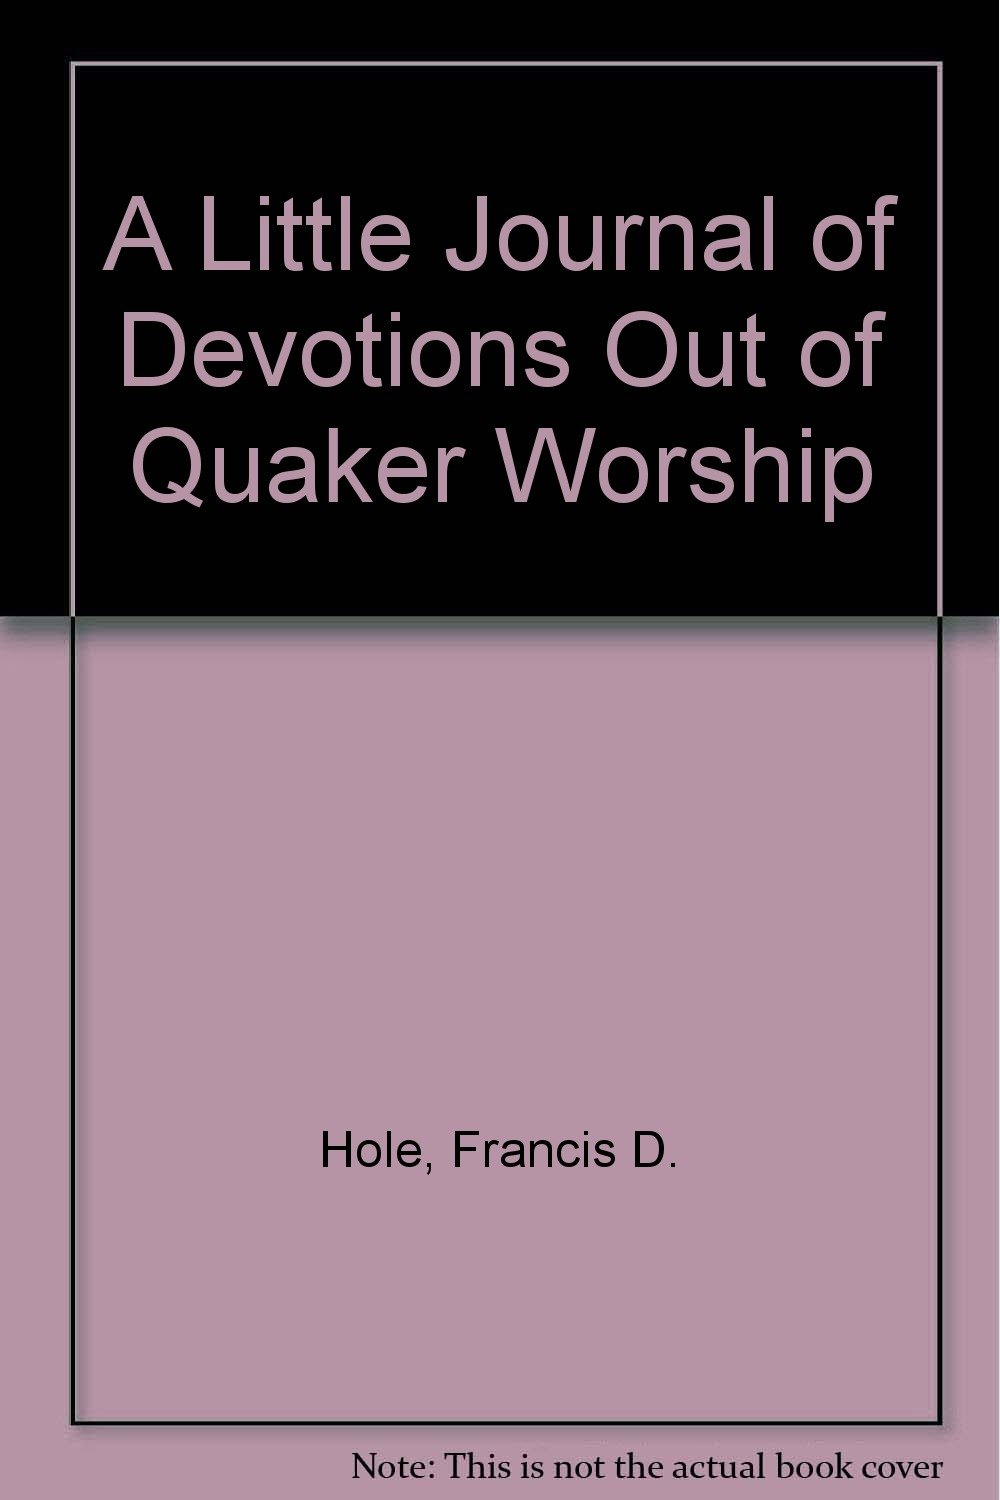 A Little Journal of Devotions Out of Quaker Worship: An Experiment With 104 Entries Across Two Thousand Miles